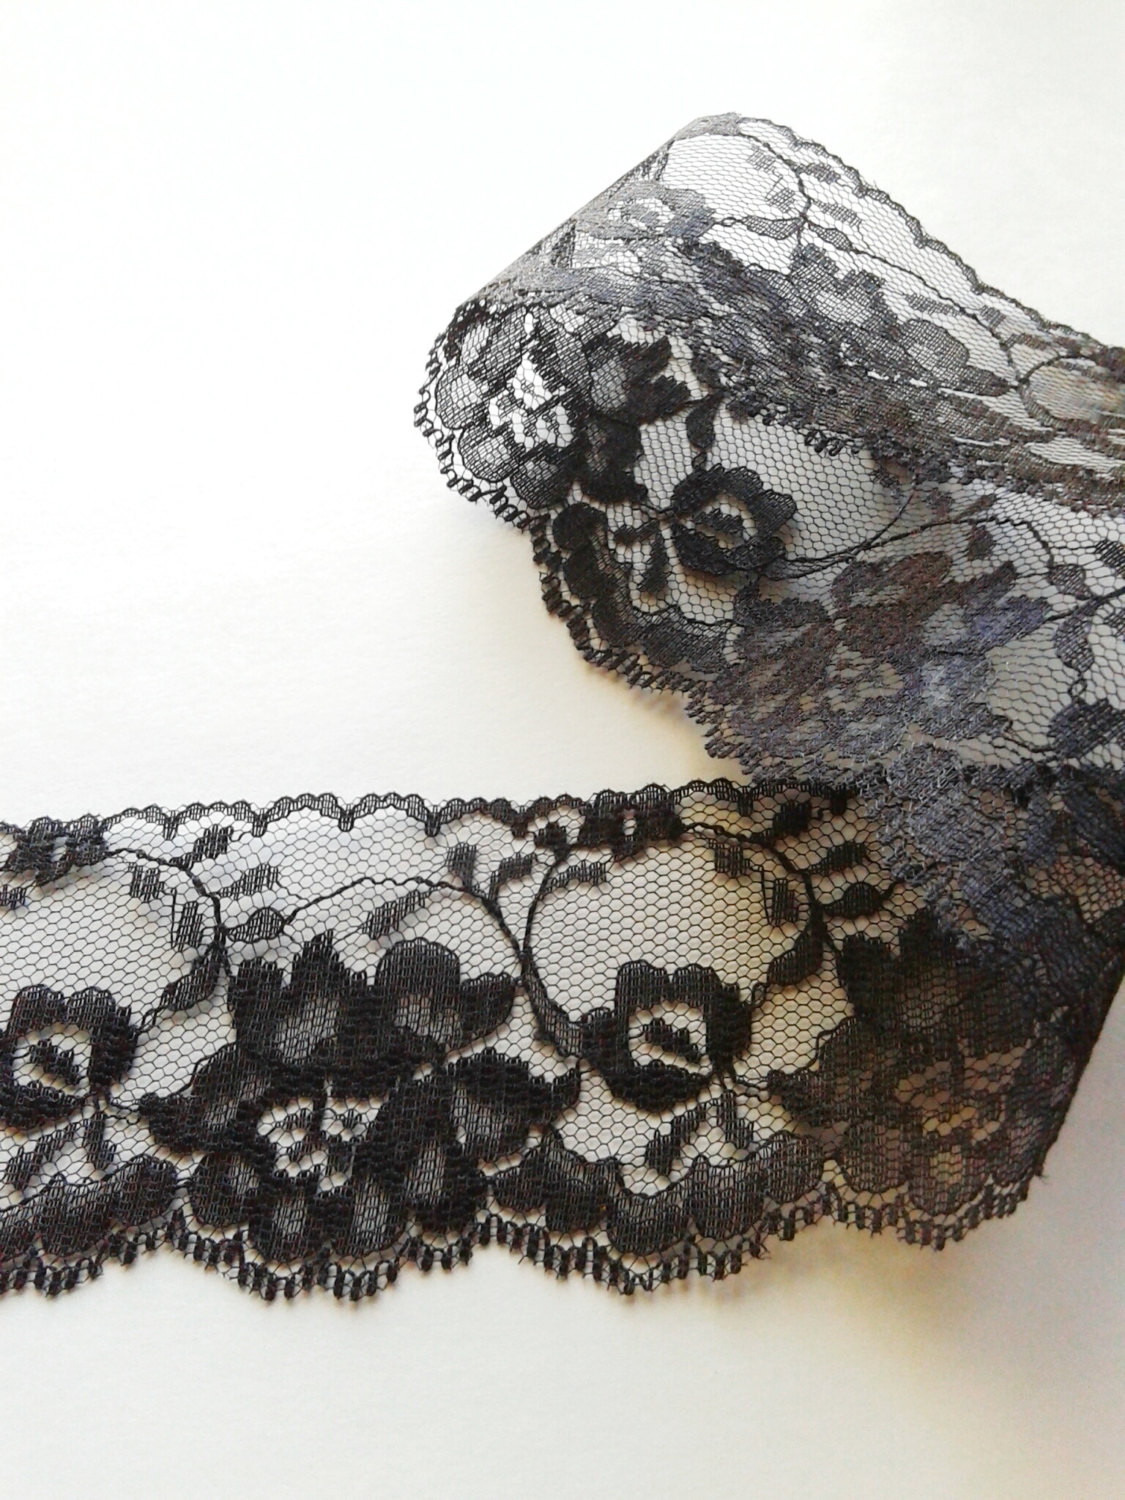 Lace Edging Lovely Black Lace Fabric Trim with Scalloped Edge Black Lace Of Incredible 44 Ideas Lace Edging